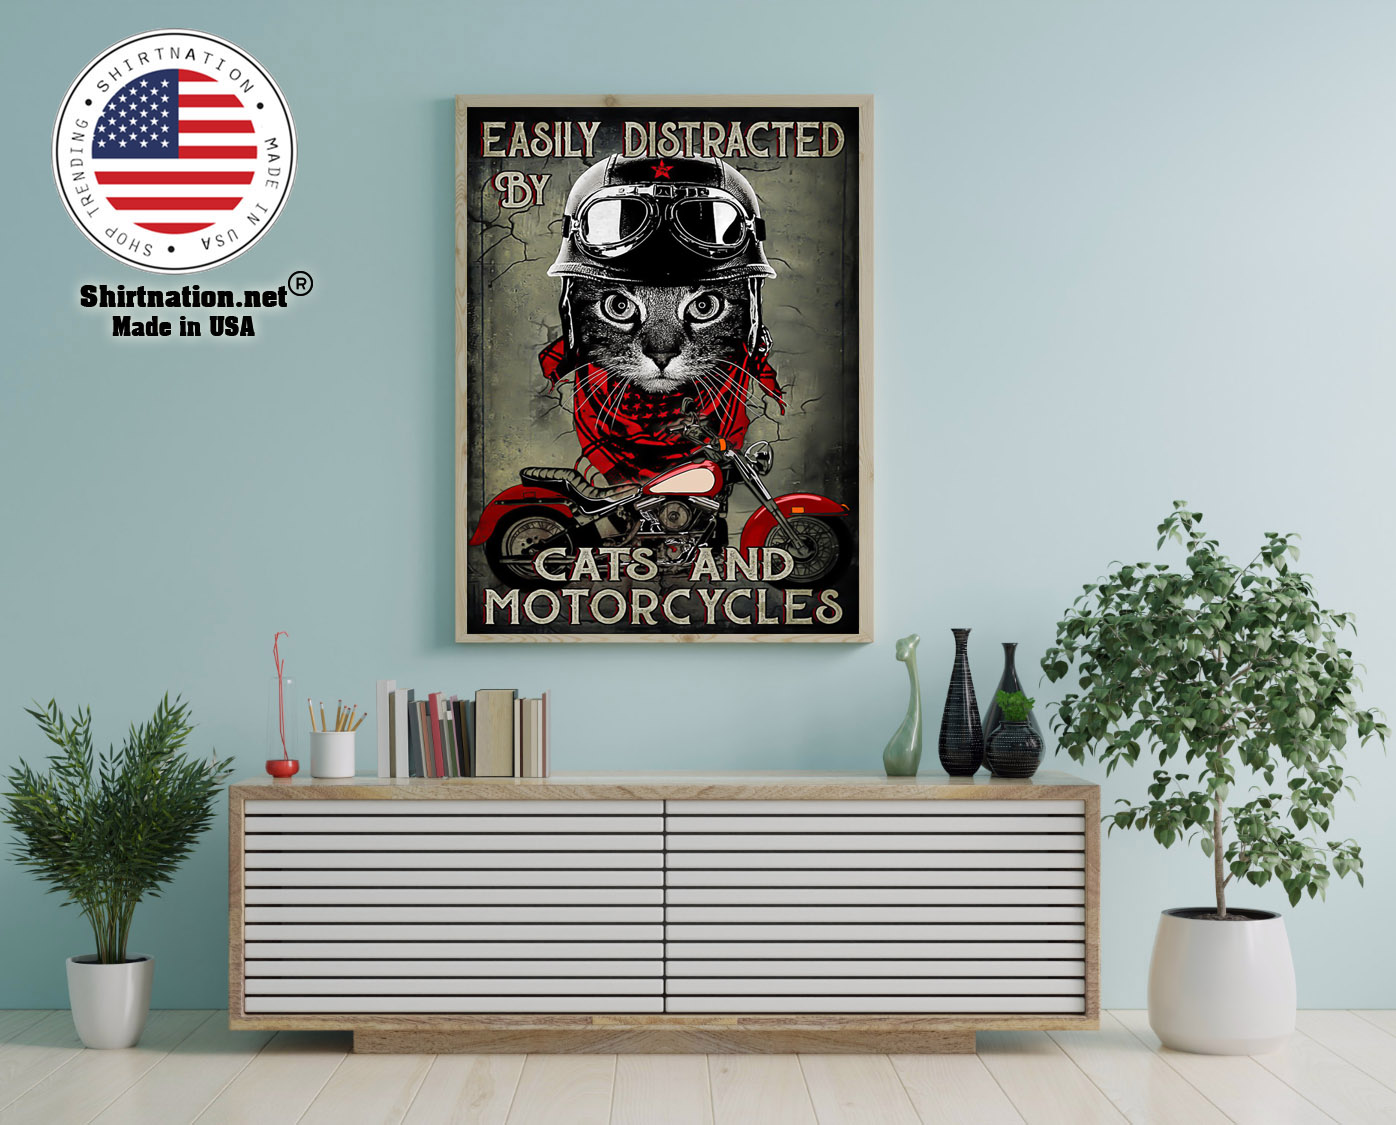 Easily distracted by cats and motorcycles poster 12 1